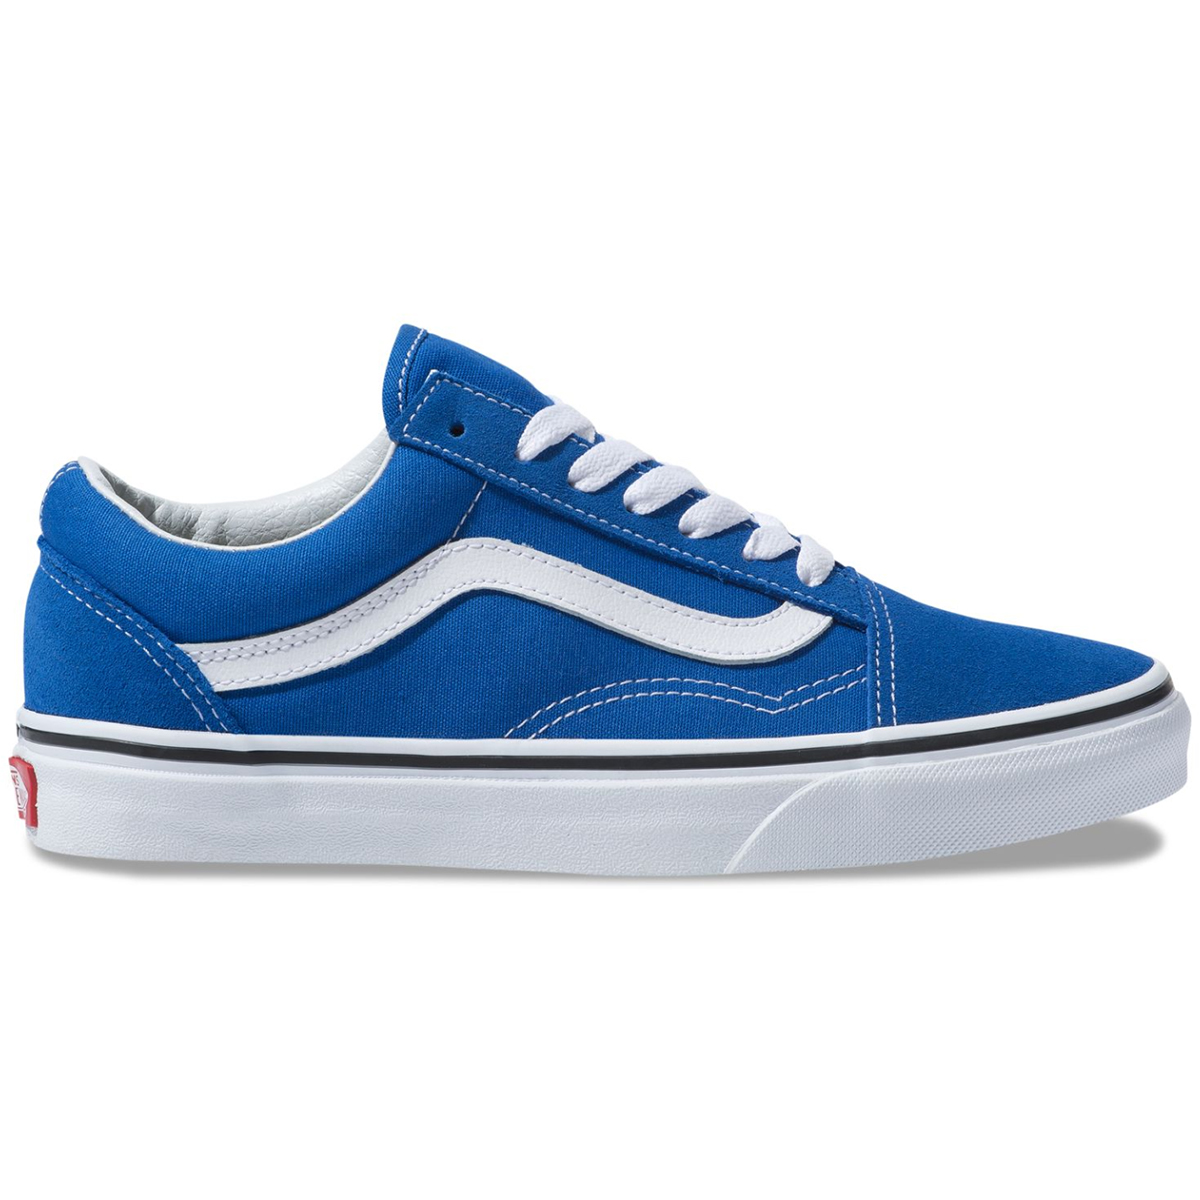 Vans Unisex Old Skool Sneakers - Blue, 8